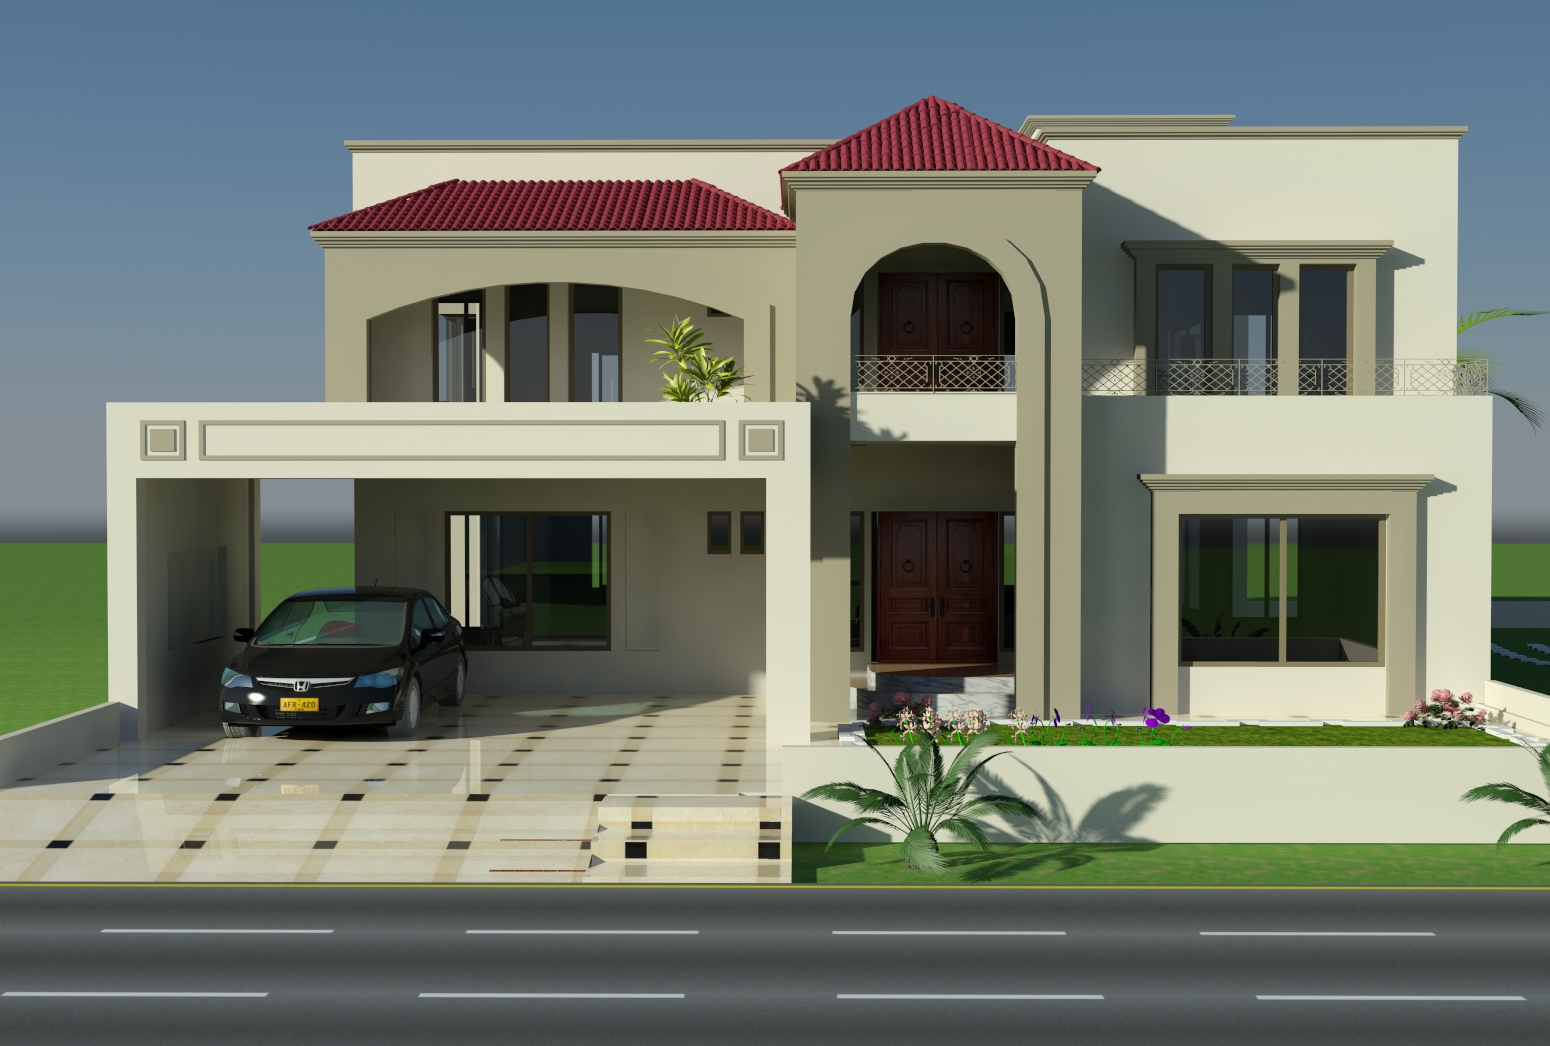 Charmant Kanal Plot House Design Europen Style In Bahria Town, Lahore, Pakistan U2026